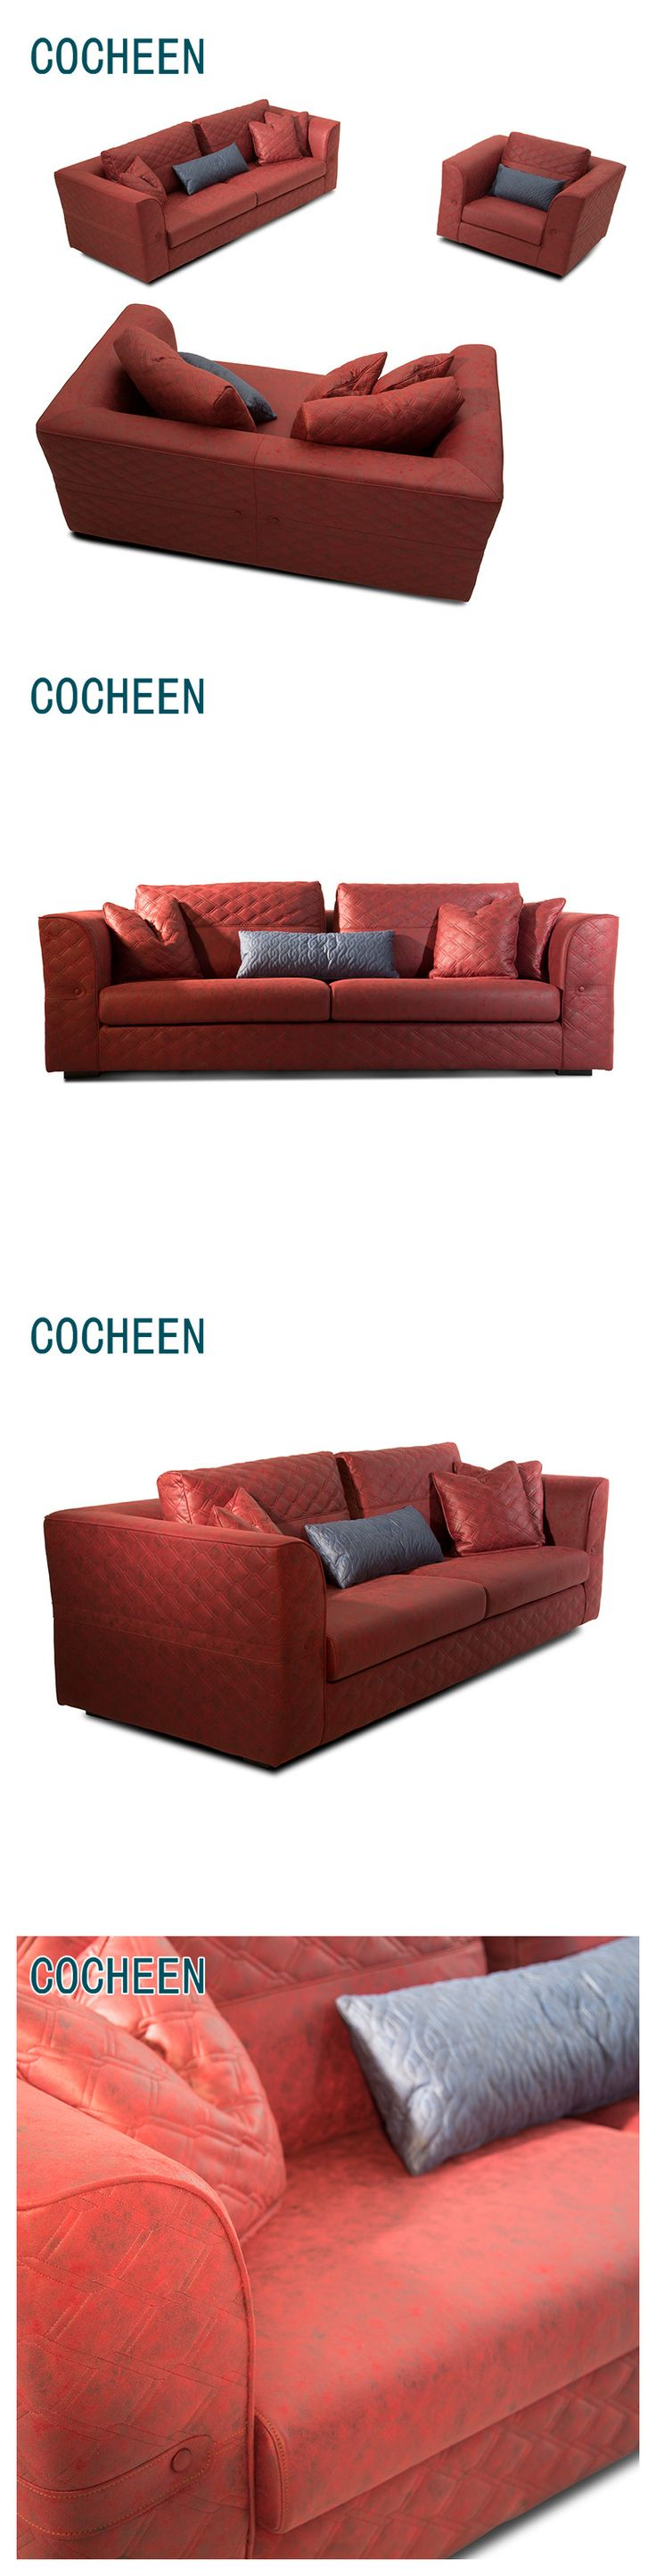 9 best Cocheen Furniture Alibaba images on Pinterest